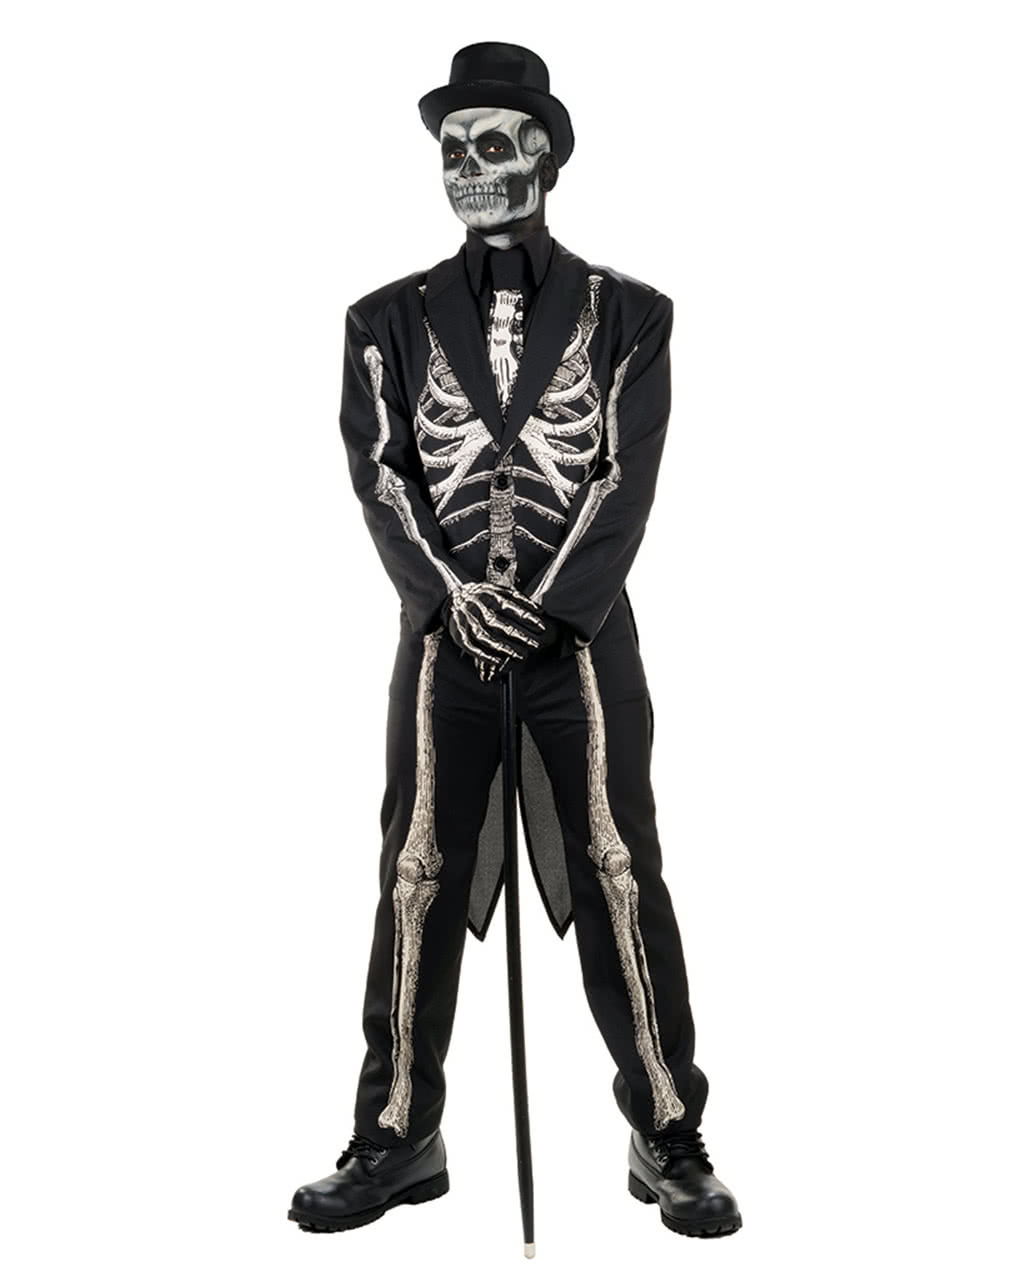 Skeleton Outfit Halloween.Skeleton Suit Costume Tailcoat